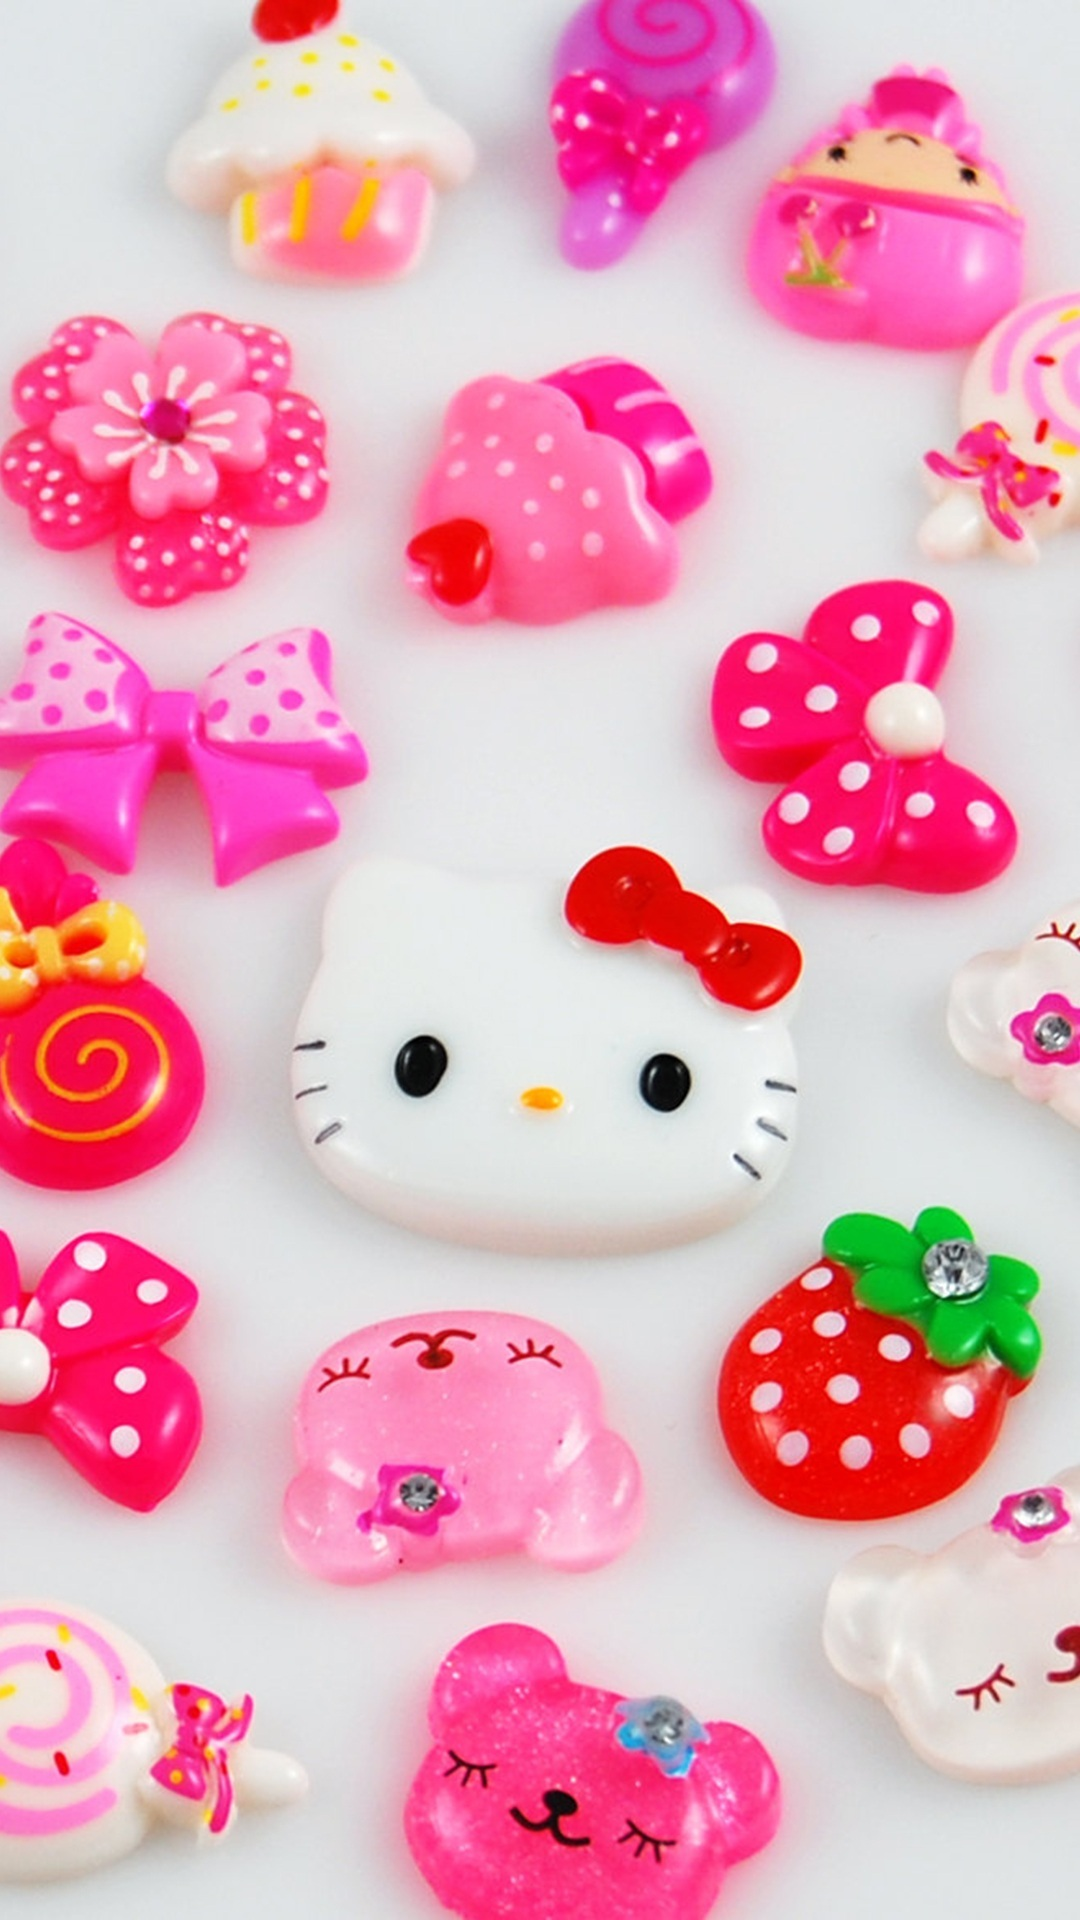 45 Free Hd Quality Cute Iphone Wallpapers Background Images